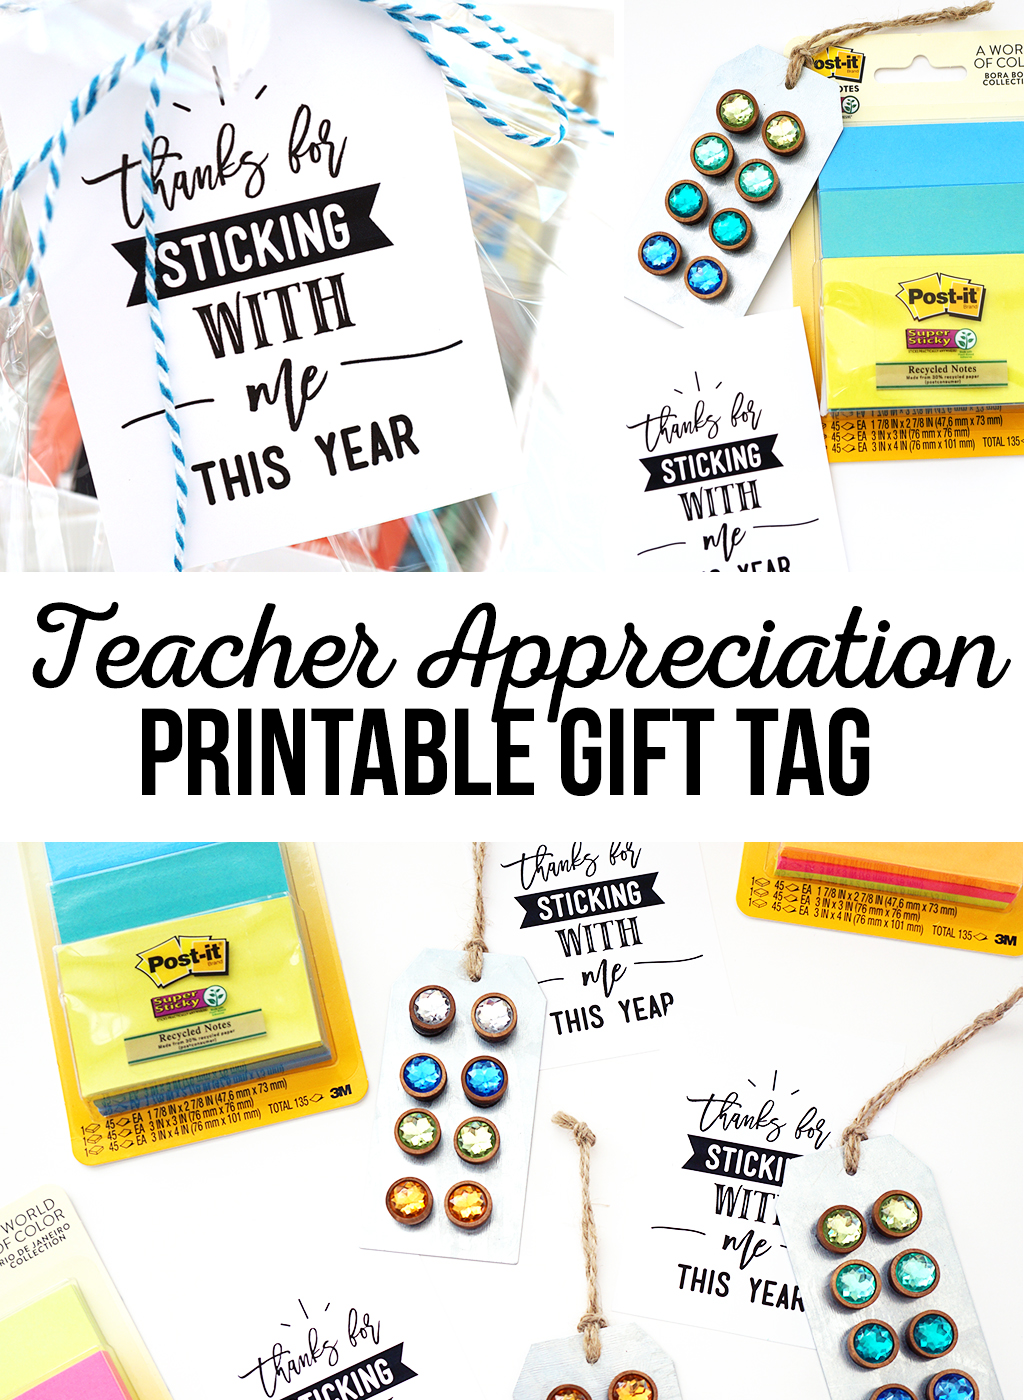 image relating to Free Printable Teacher Appreciation Tags named Owing for Sticking with Me Printable Tag - The Creating Chicks